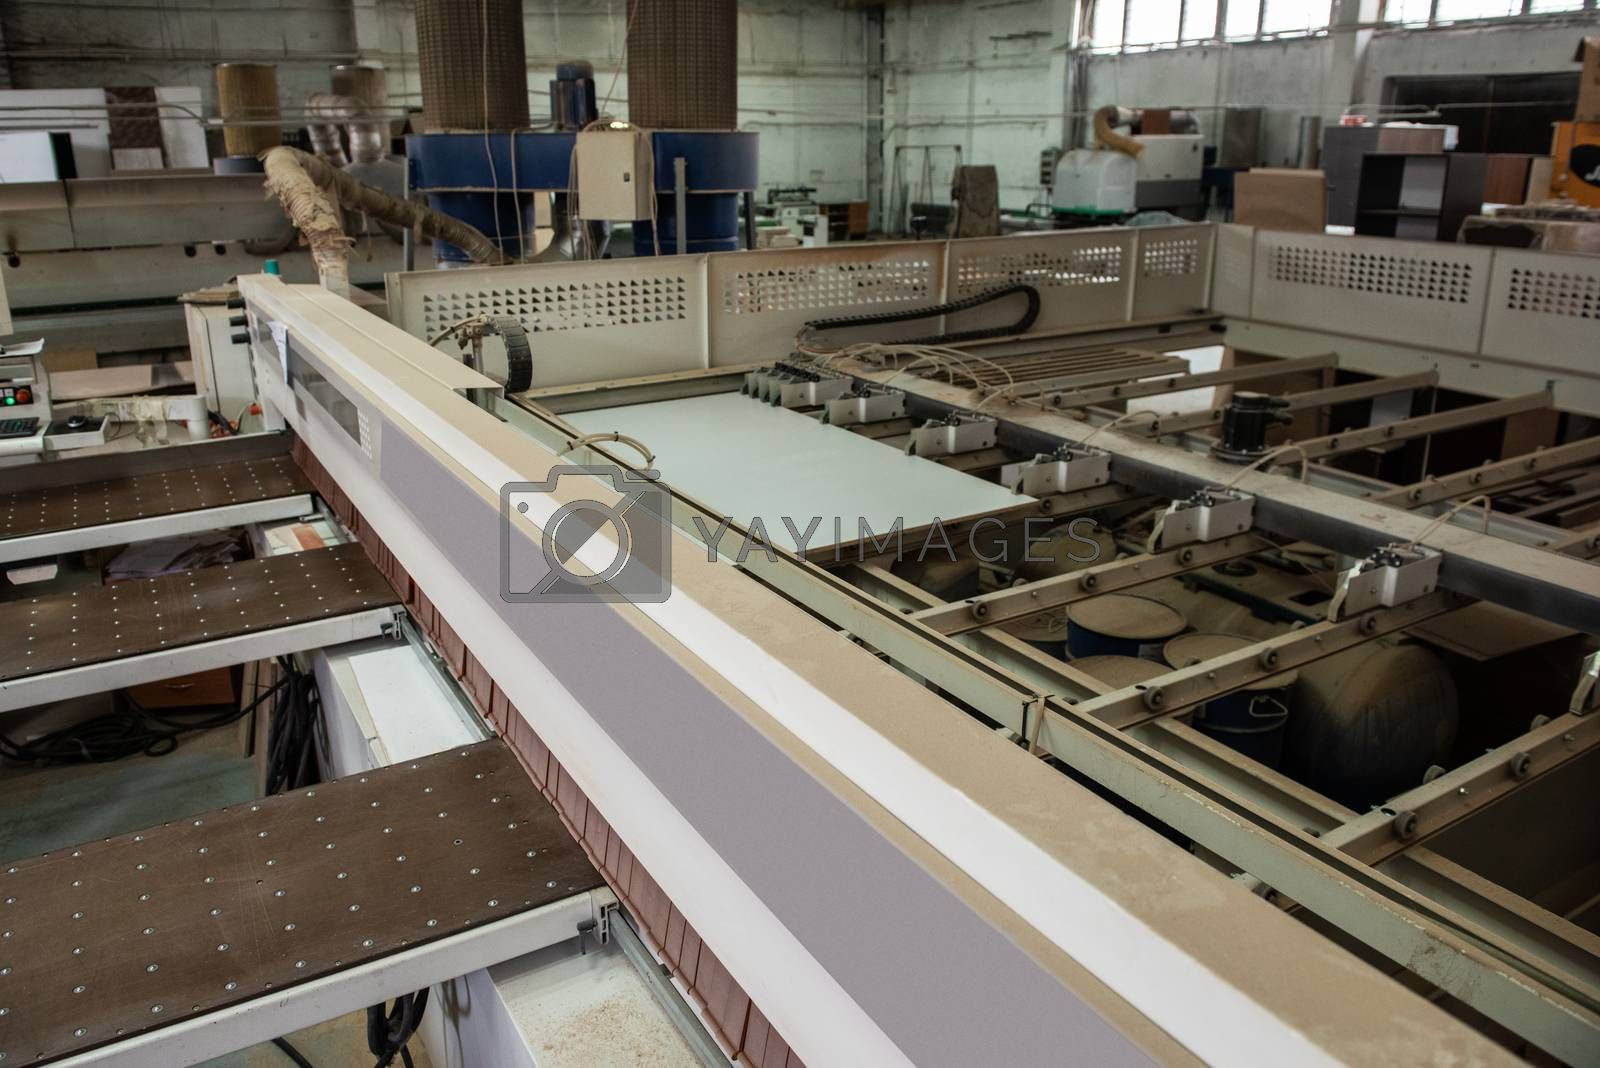 Wooden furniture production. Industrial cutting machine for automatic wood cutting